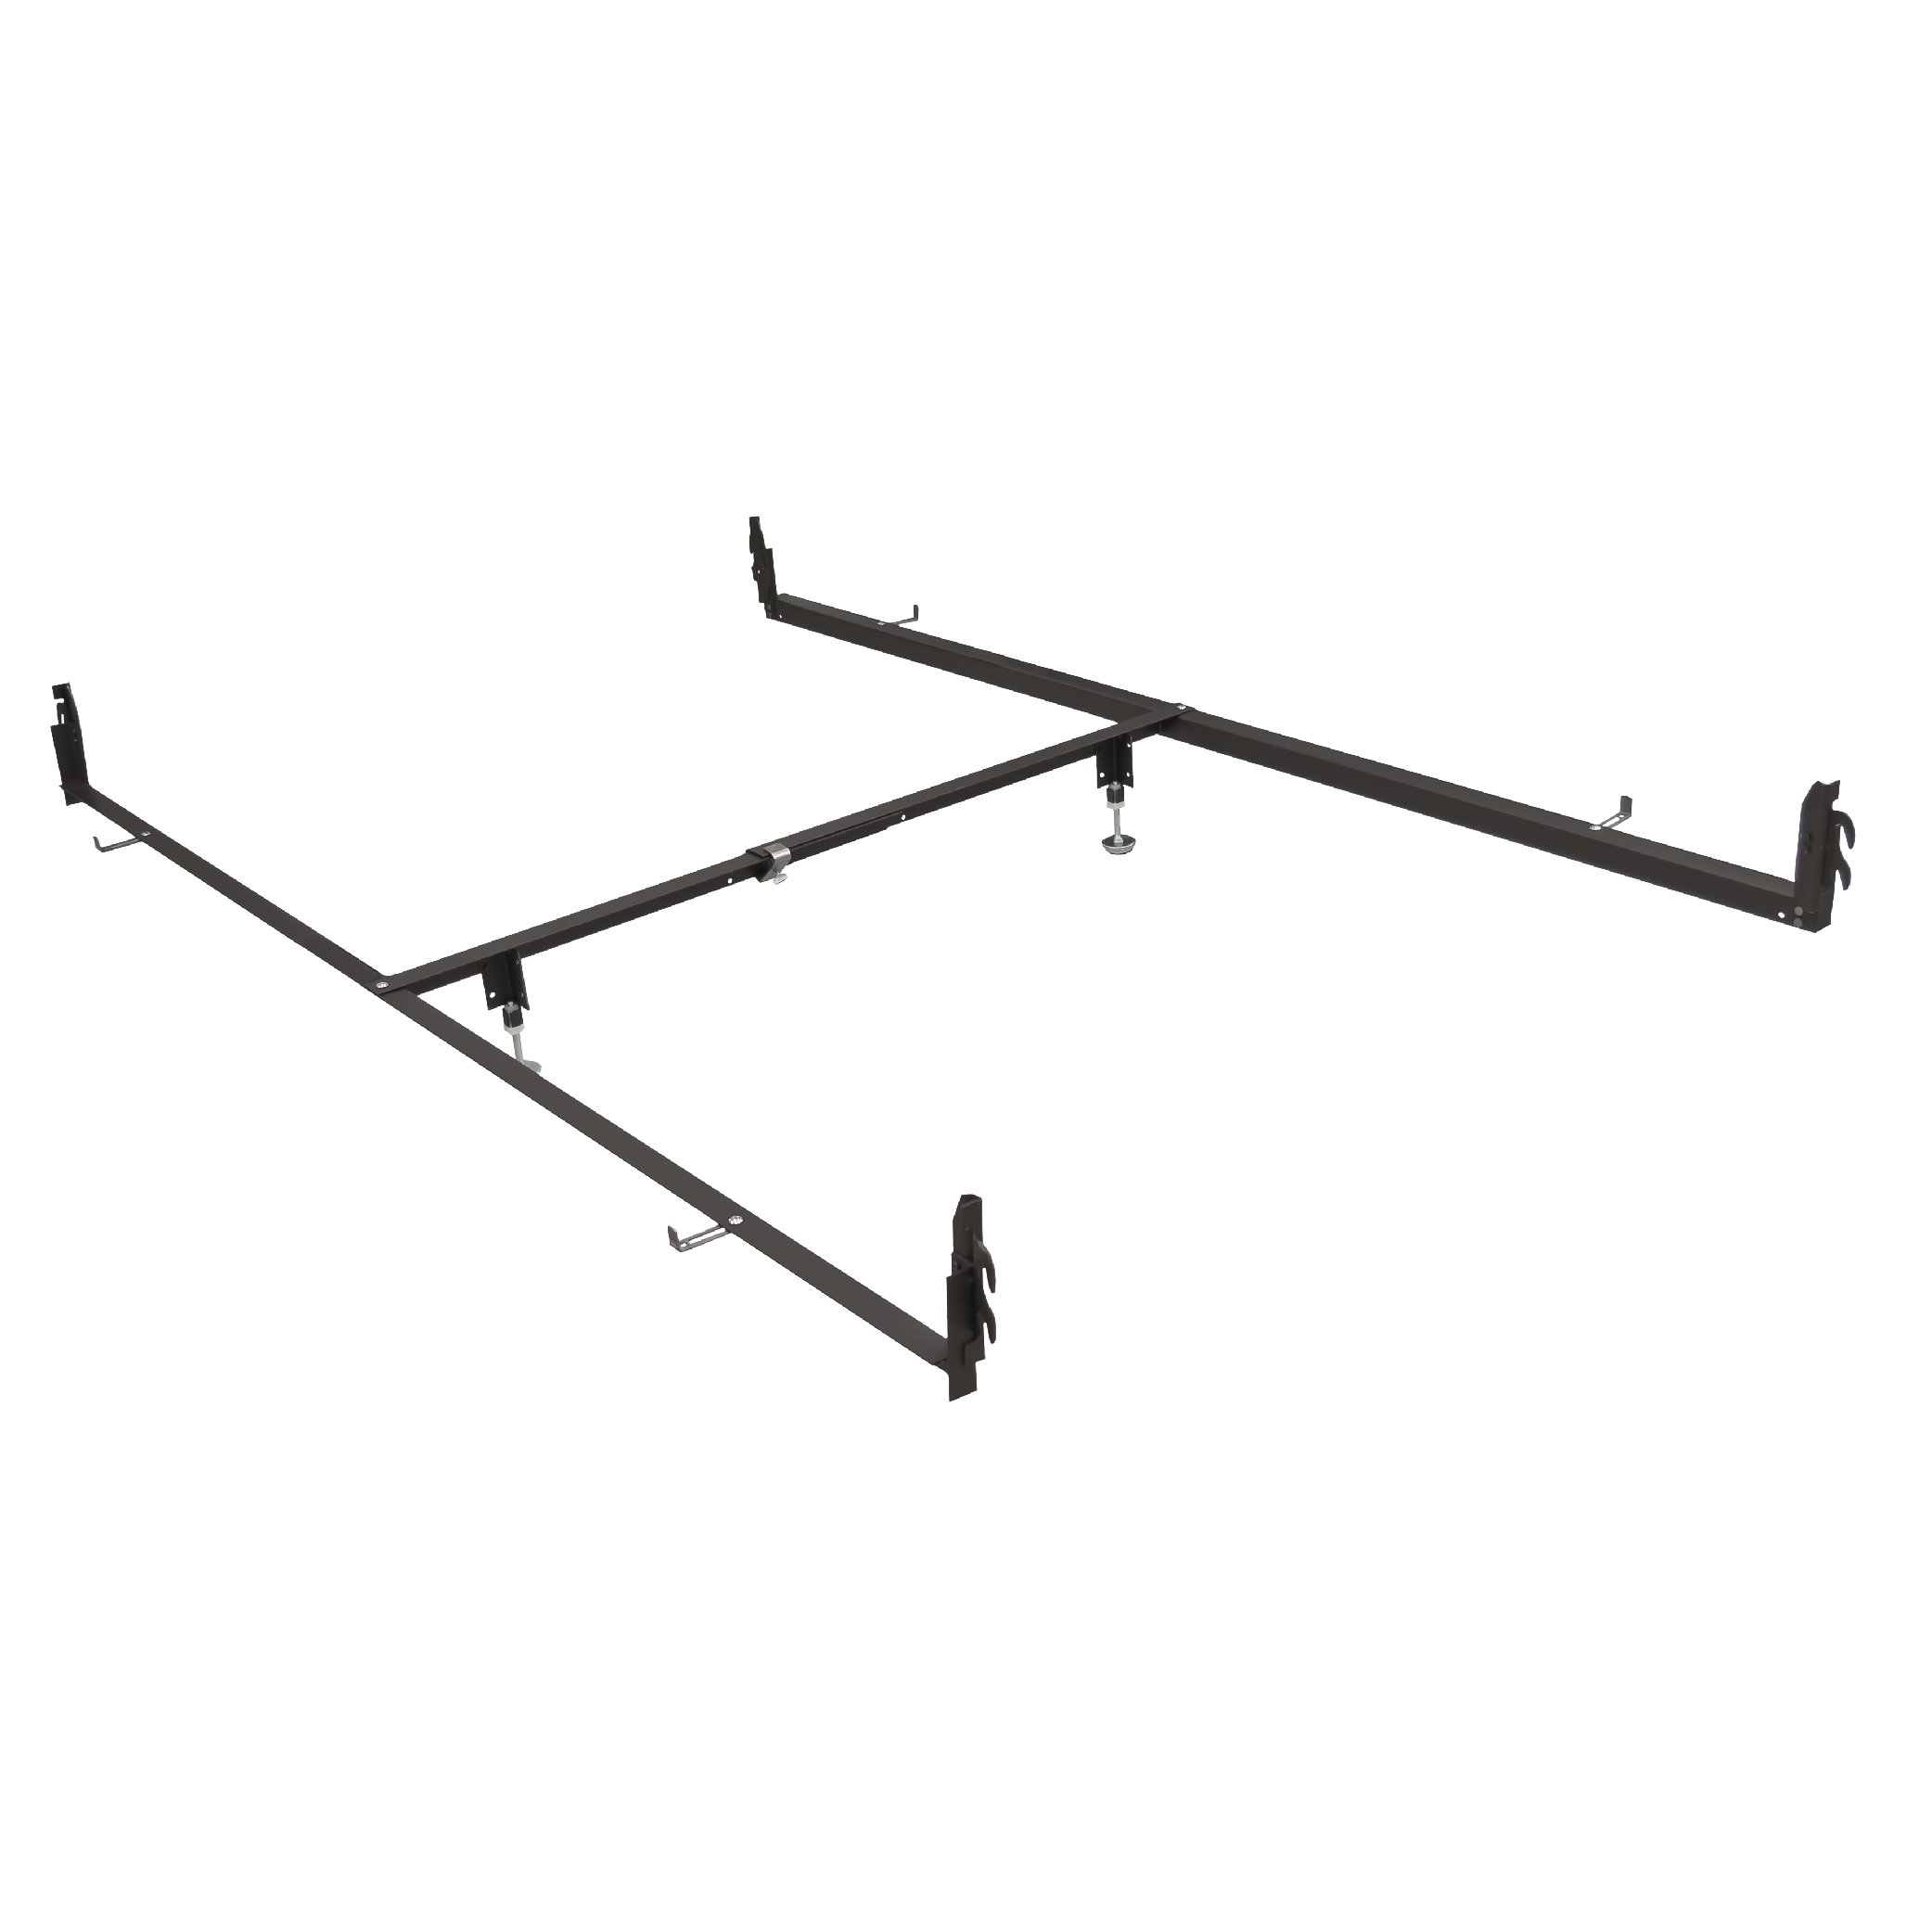 Glideaway DRCV1L Bed Rail System - Adjustable Steel Drop Rail Kit to Convert Full Size Beds to Fit Queen Size Mattresses - Suitable For Antique Beds - Hook-in Attachments